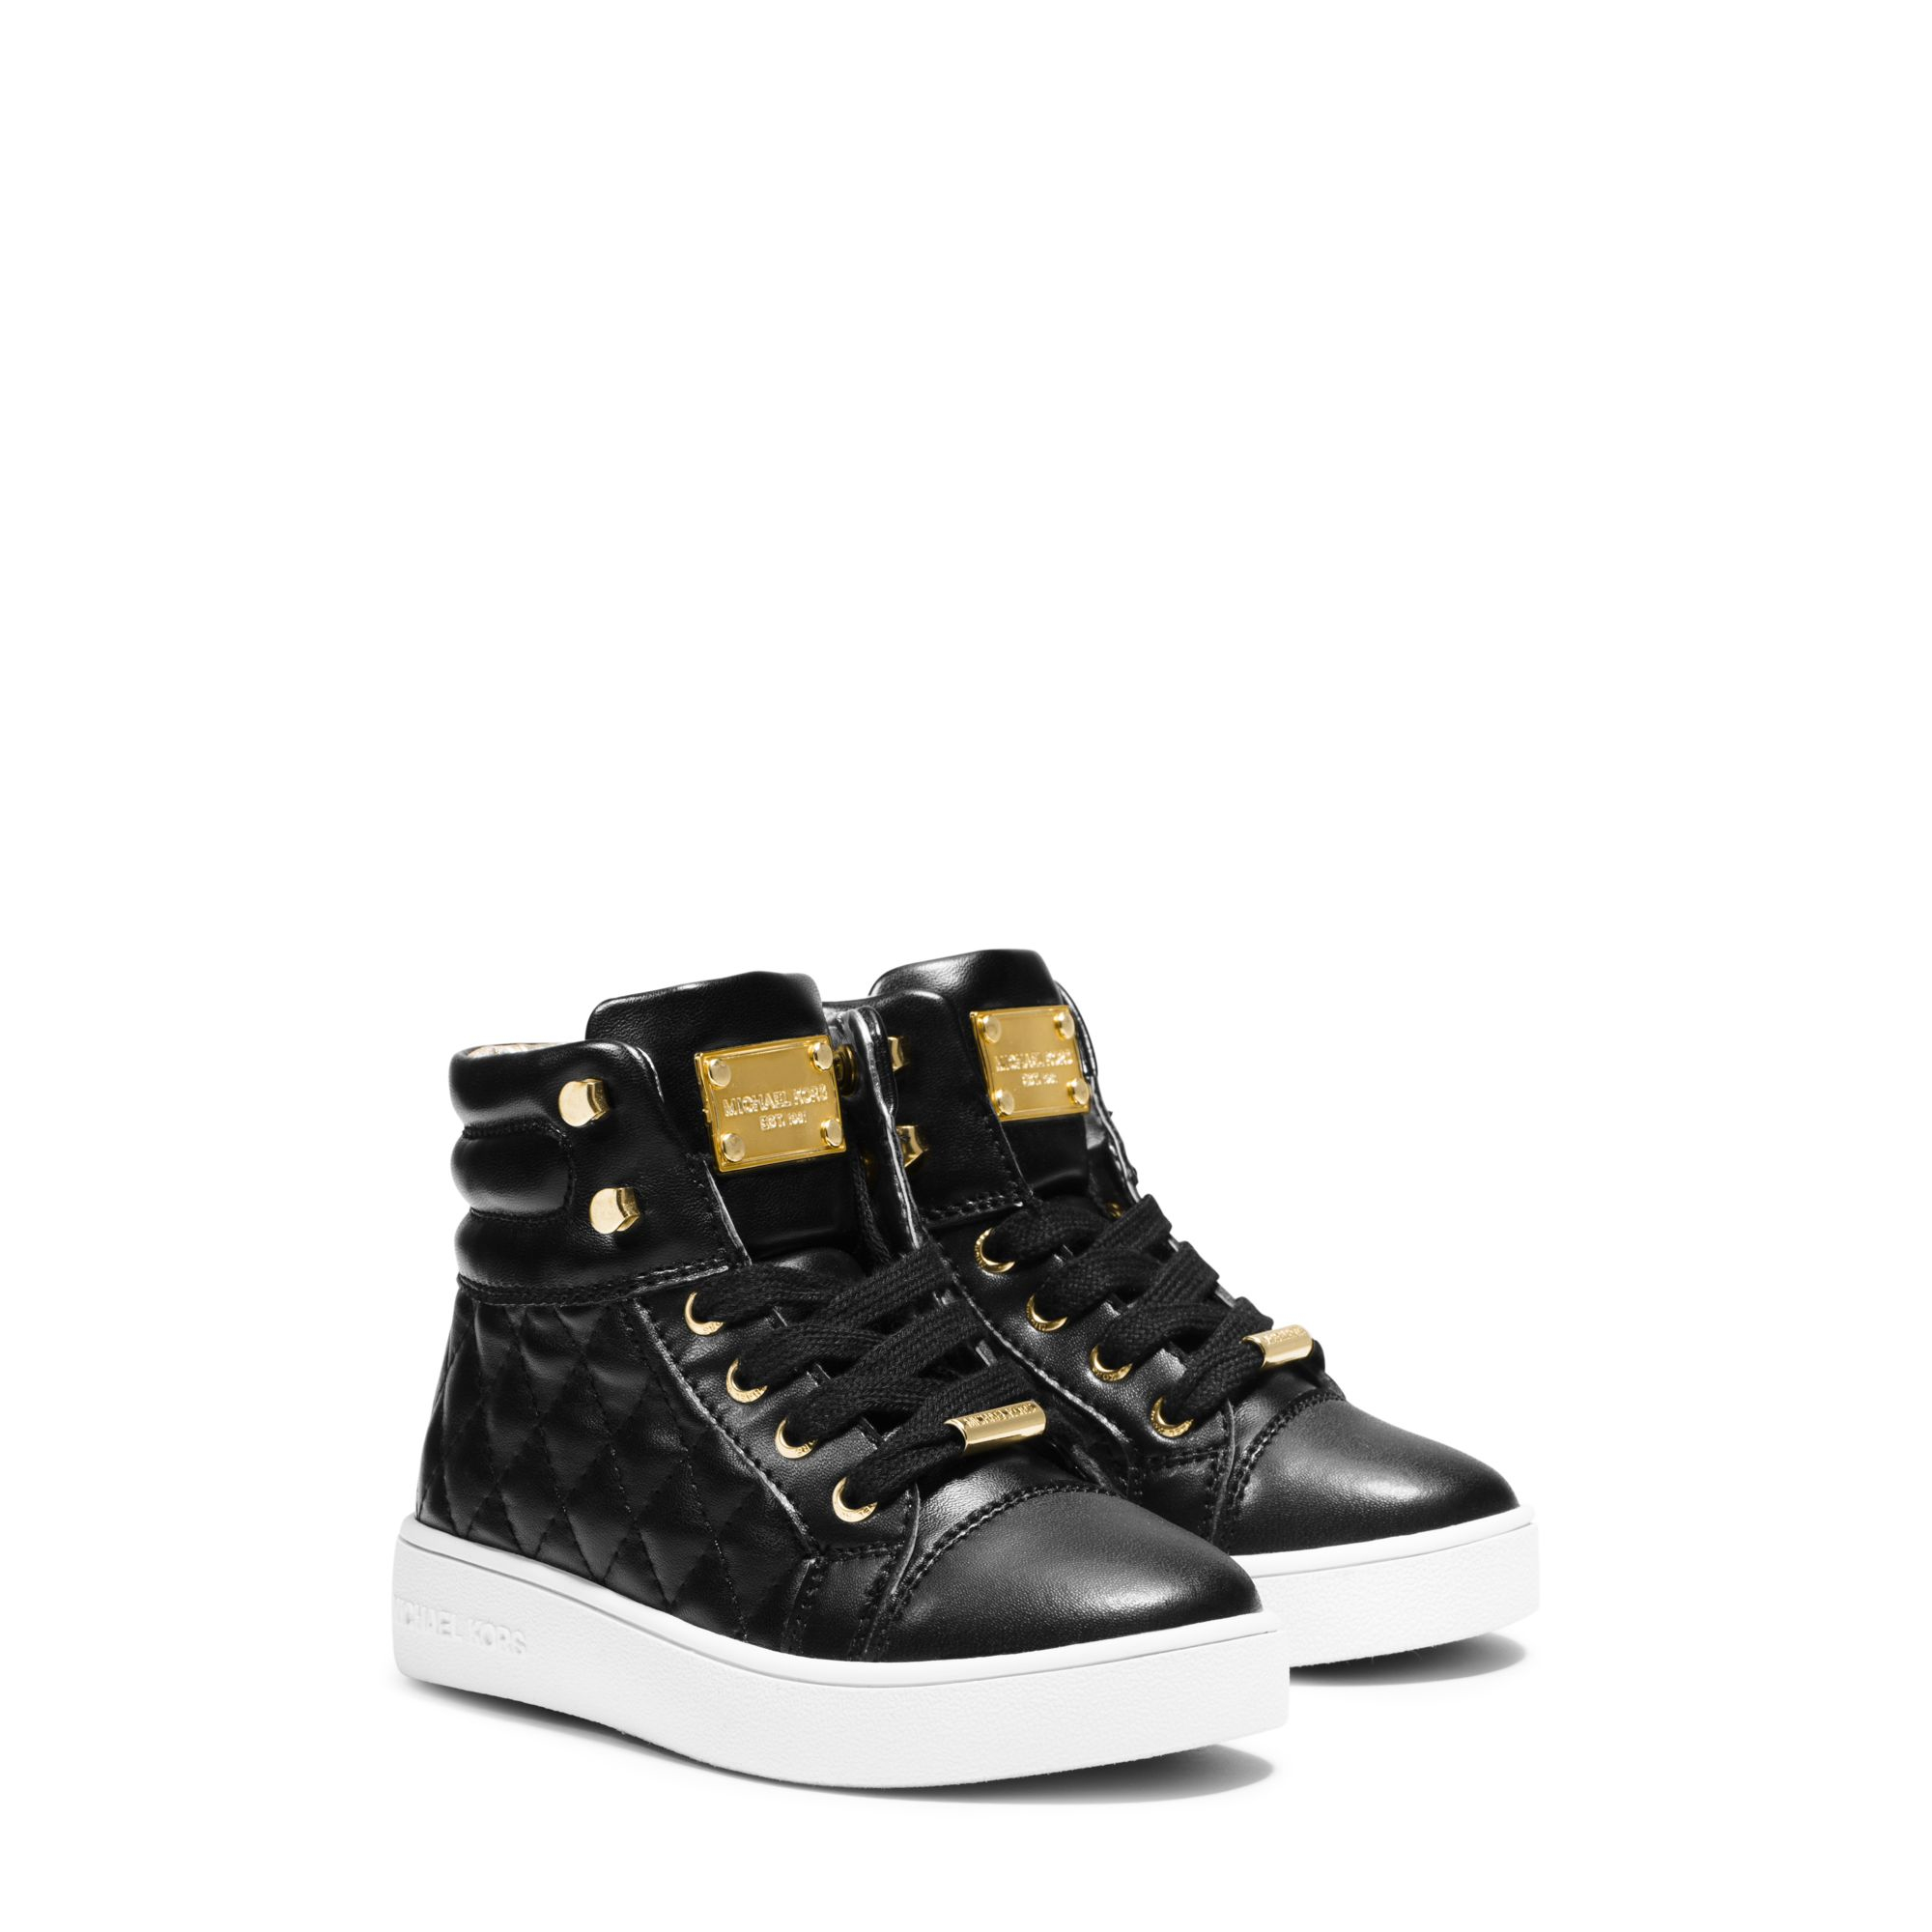 7e86e71f3e1 Lyst - Michael Kors Girl s Ivy Quilted High-top Sneaker